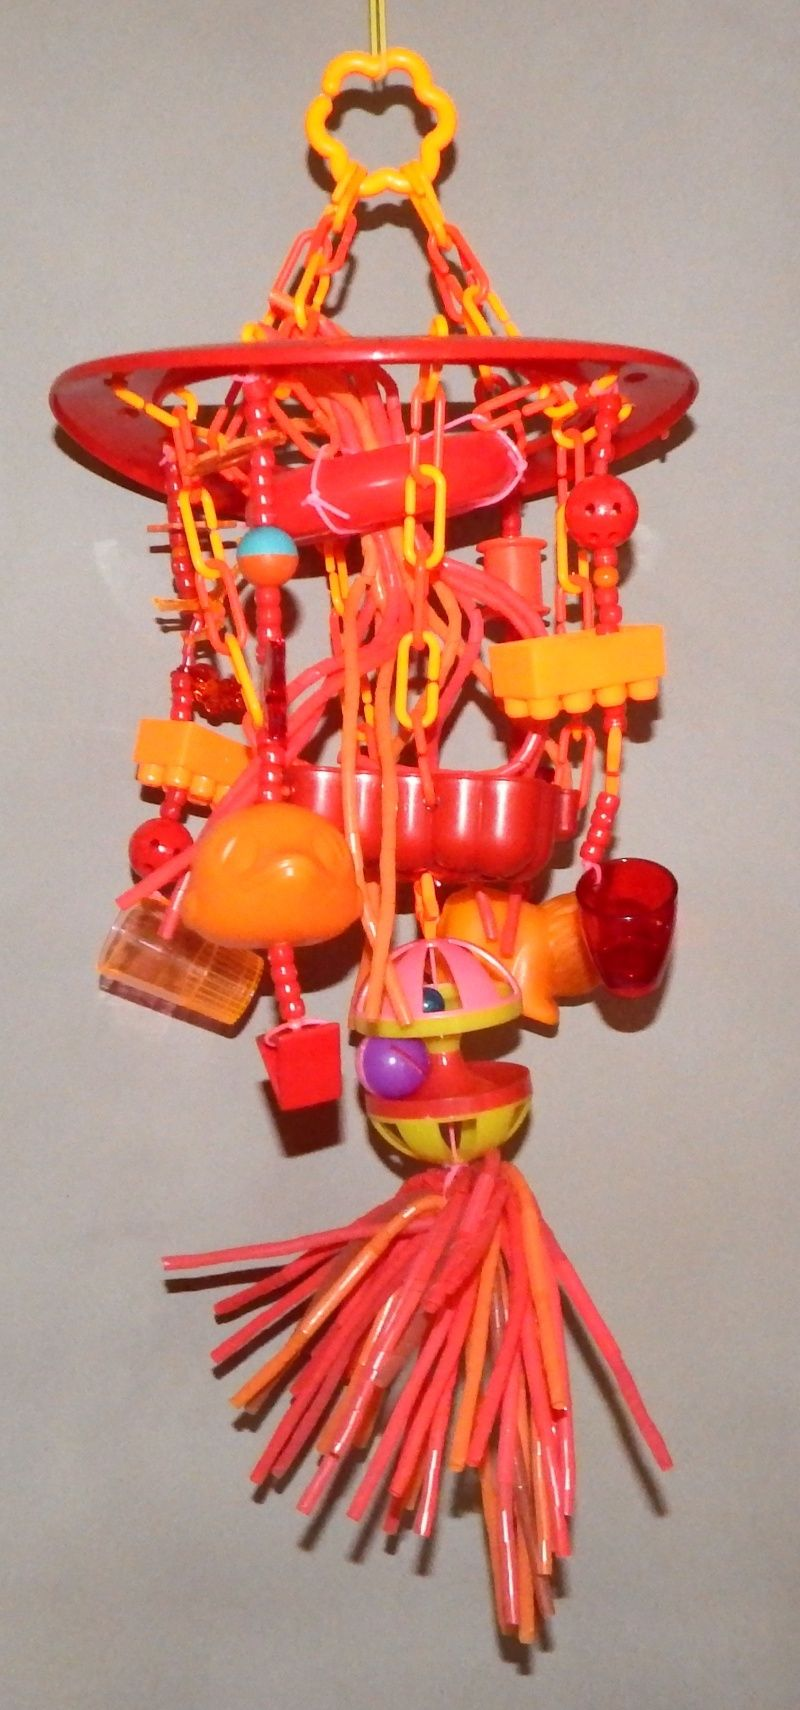 LECSI'S FUN-RICHMENT TOYS IN STOCK NOW Fire_i10